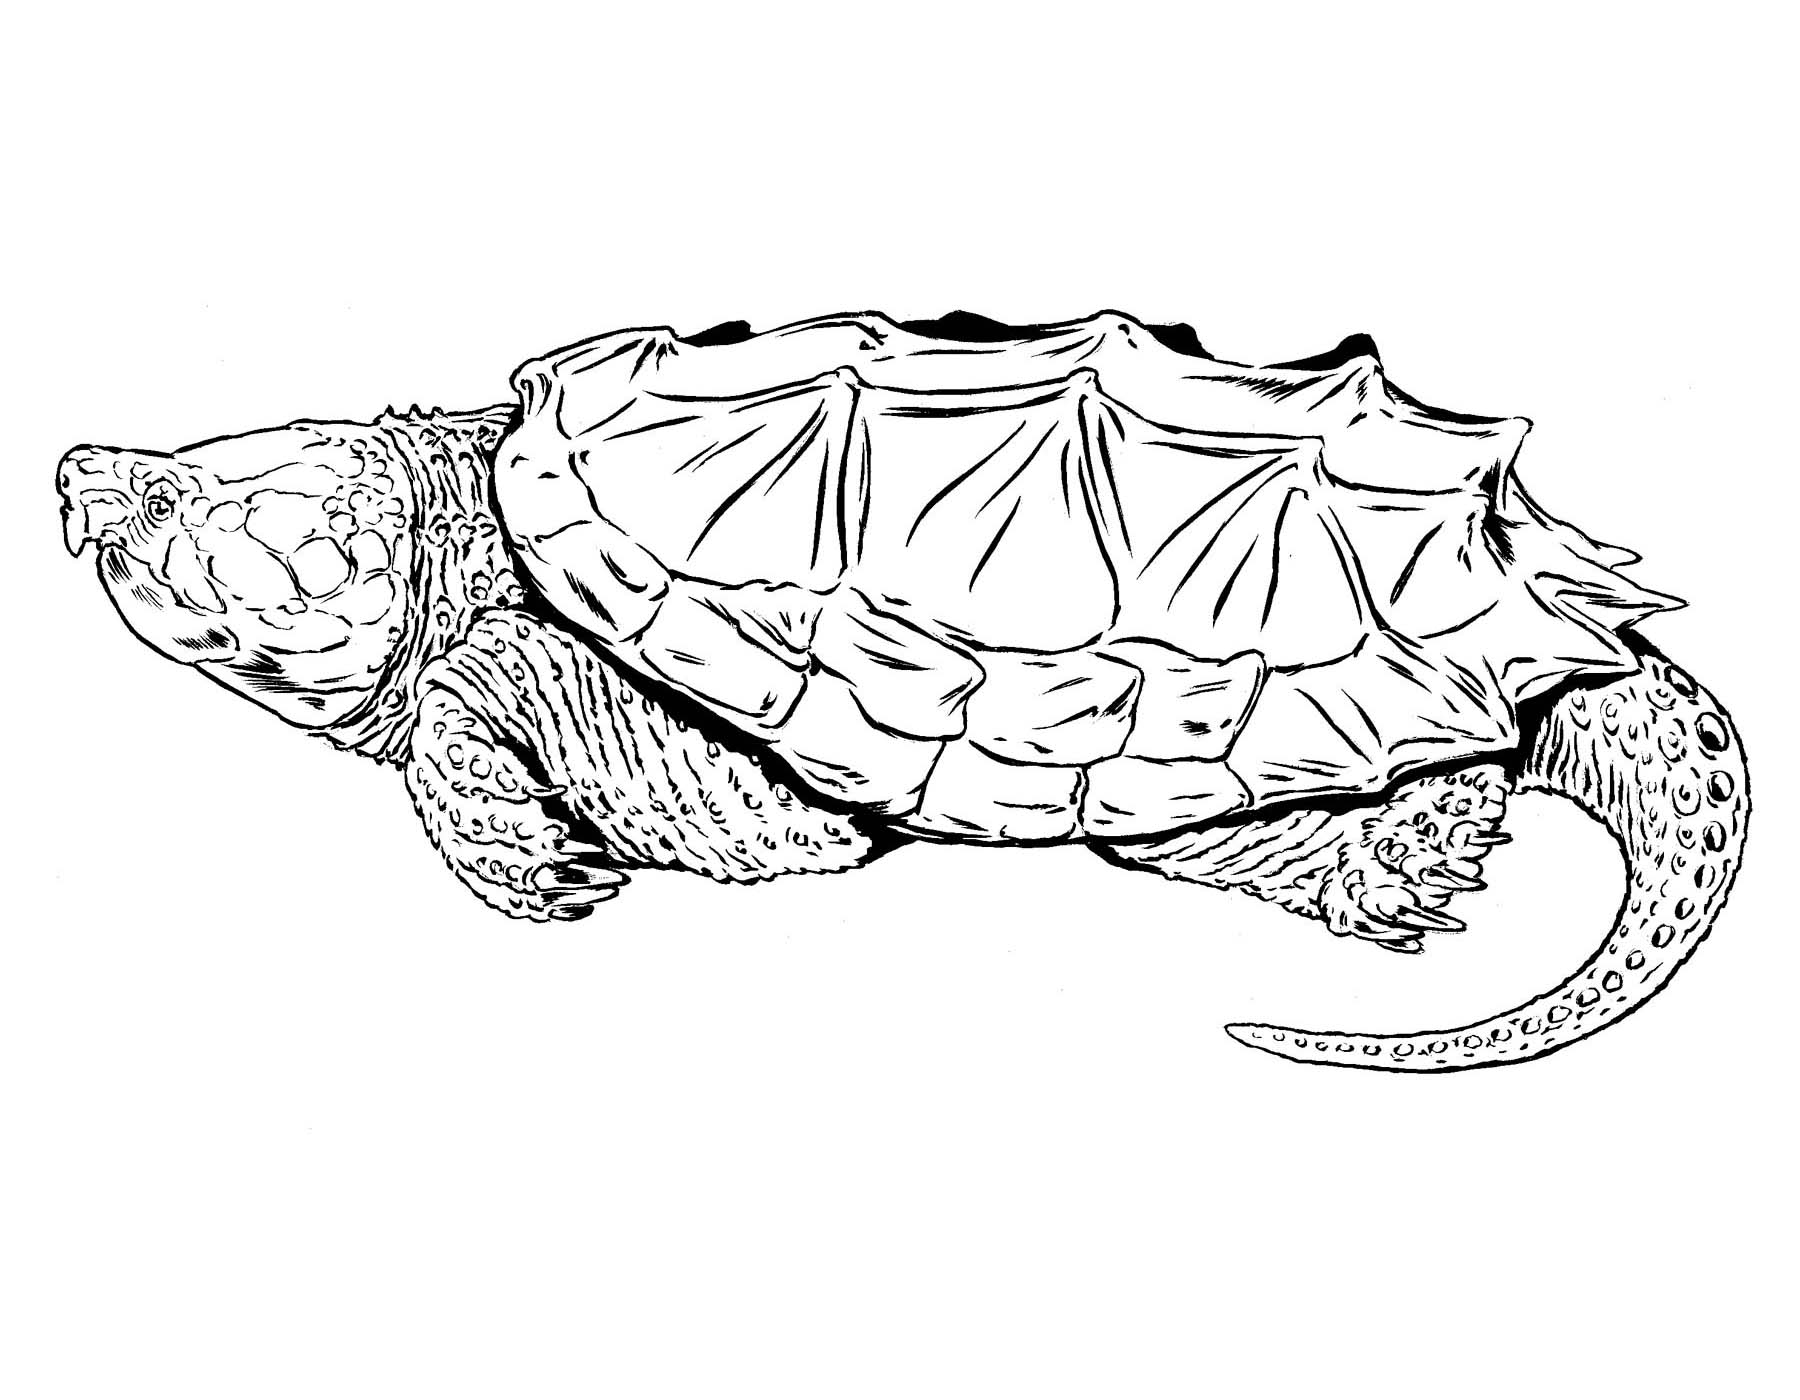 Drawn sea turtle snapping turtle Turtle Turtle Missouri of Snapping